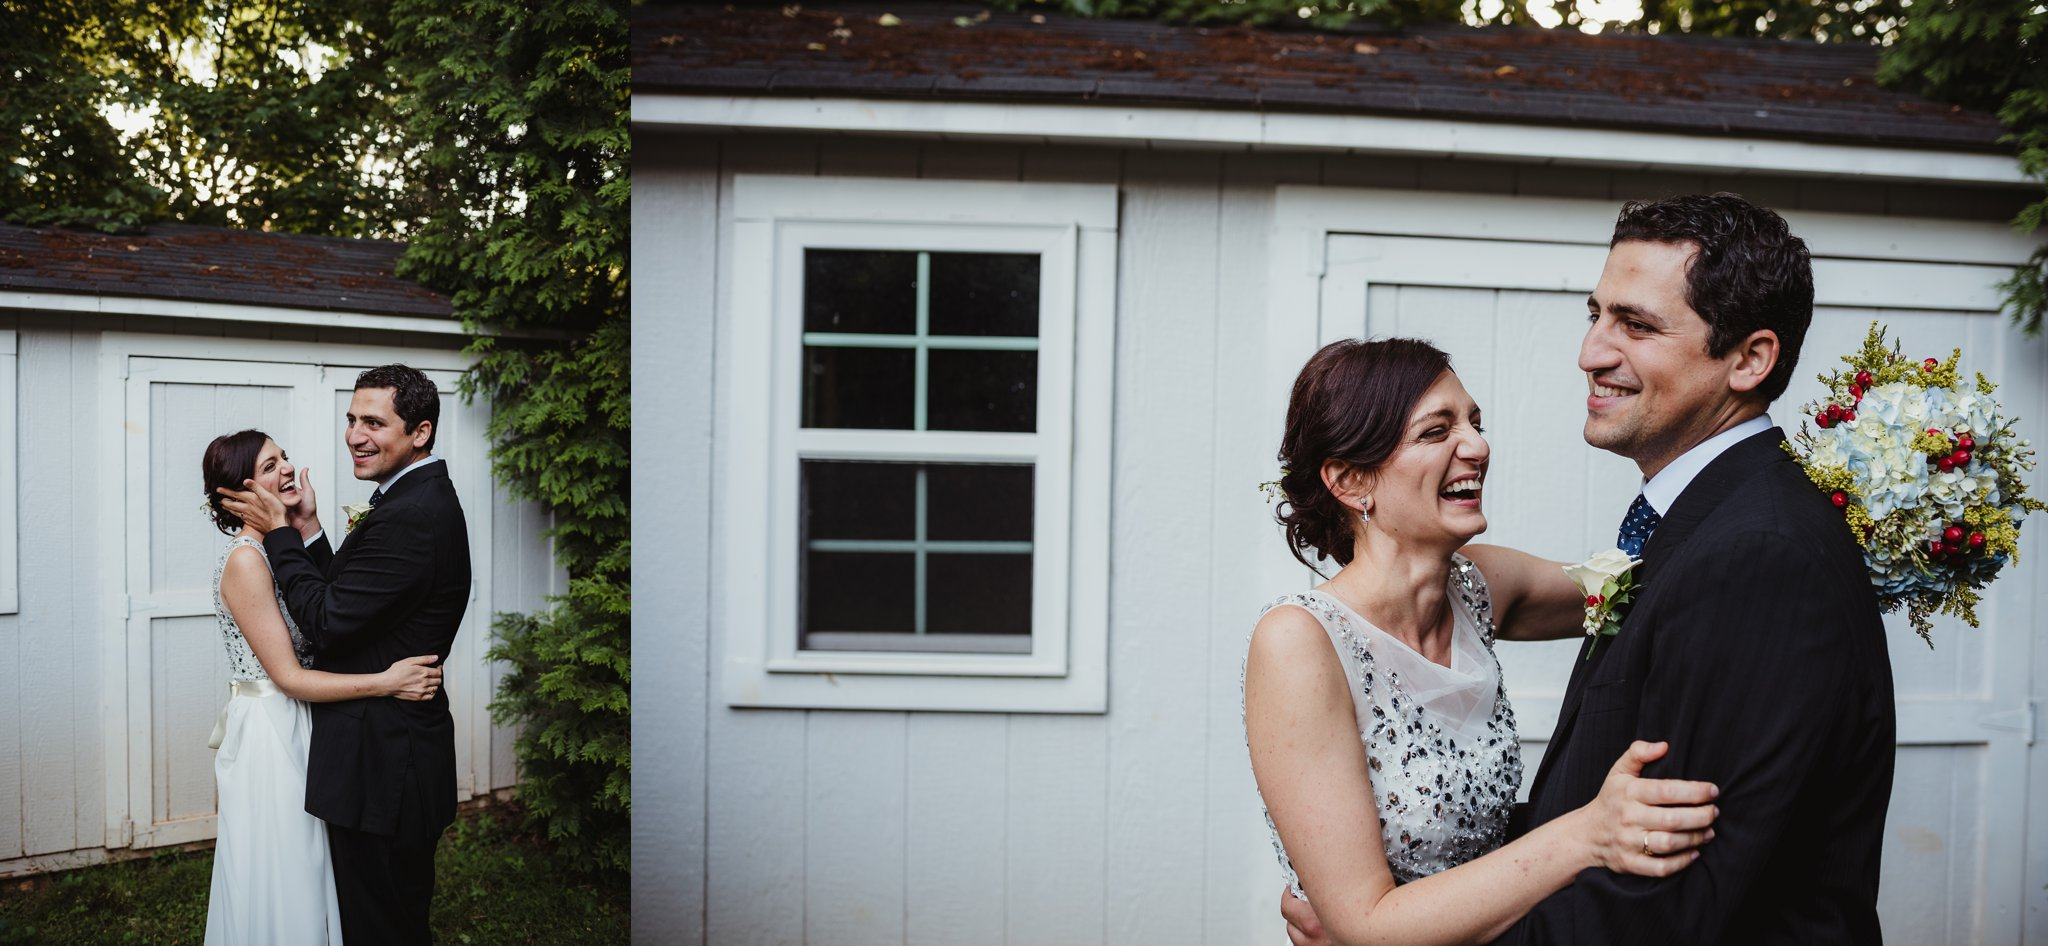 The bride and groom have portraits taken in their backyard in Raleigh right after their wedding ceremony, images by Rose Trail Images.